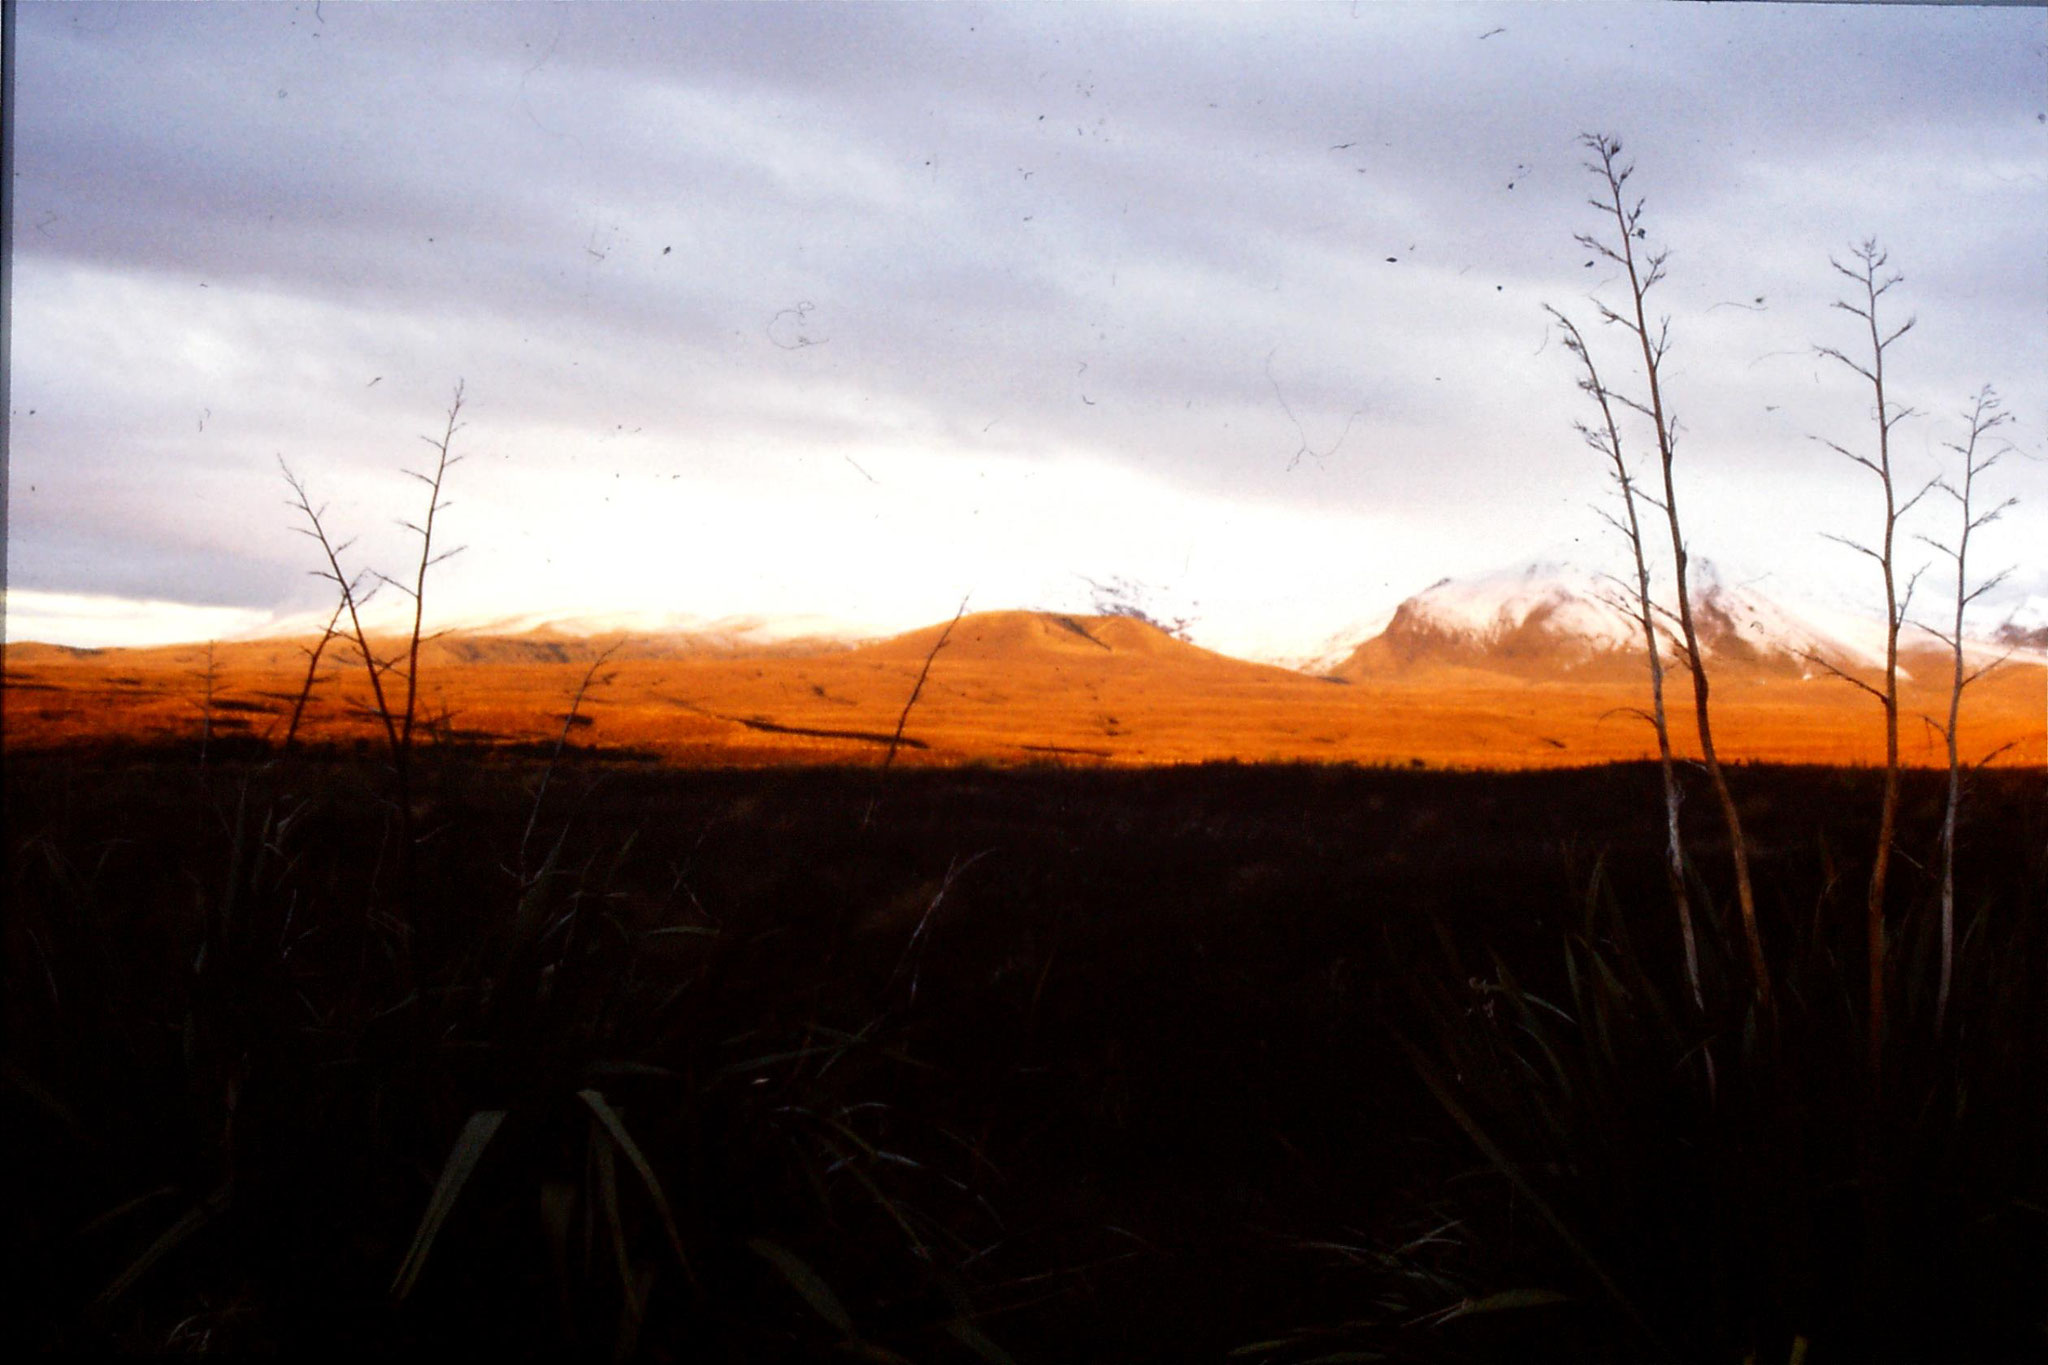 29/8/1990: 5: sunset on Mt Ngauruhoe